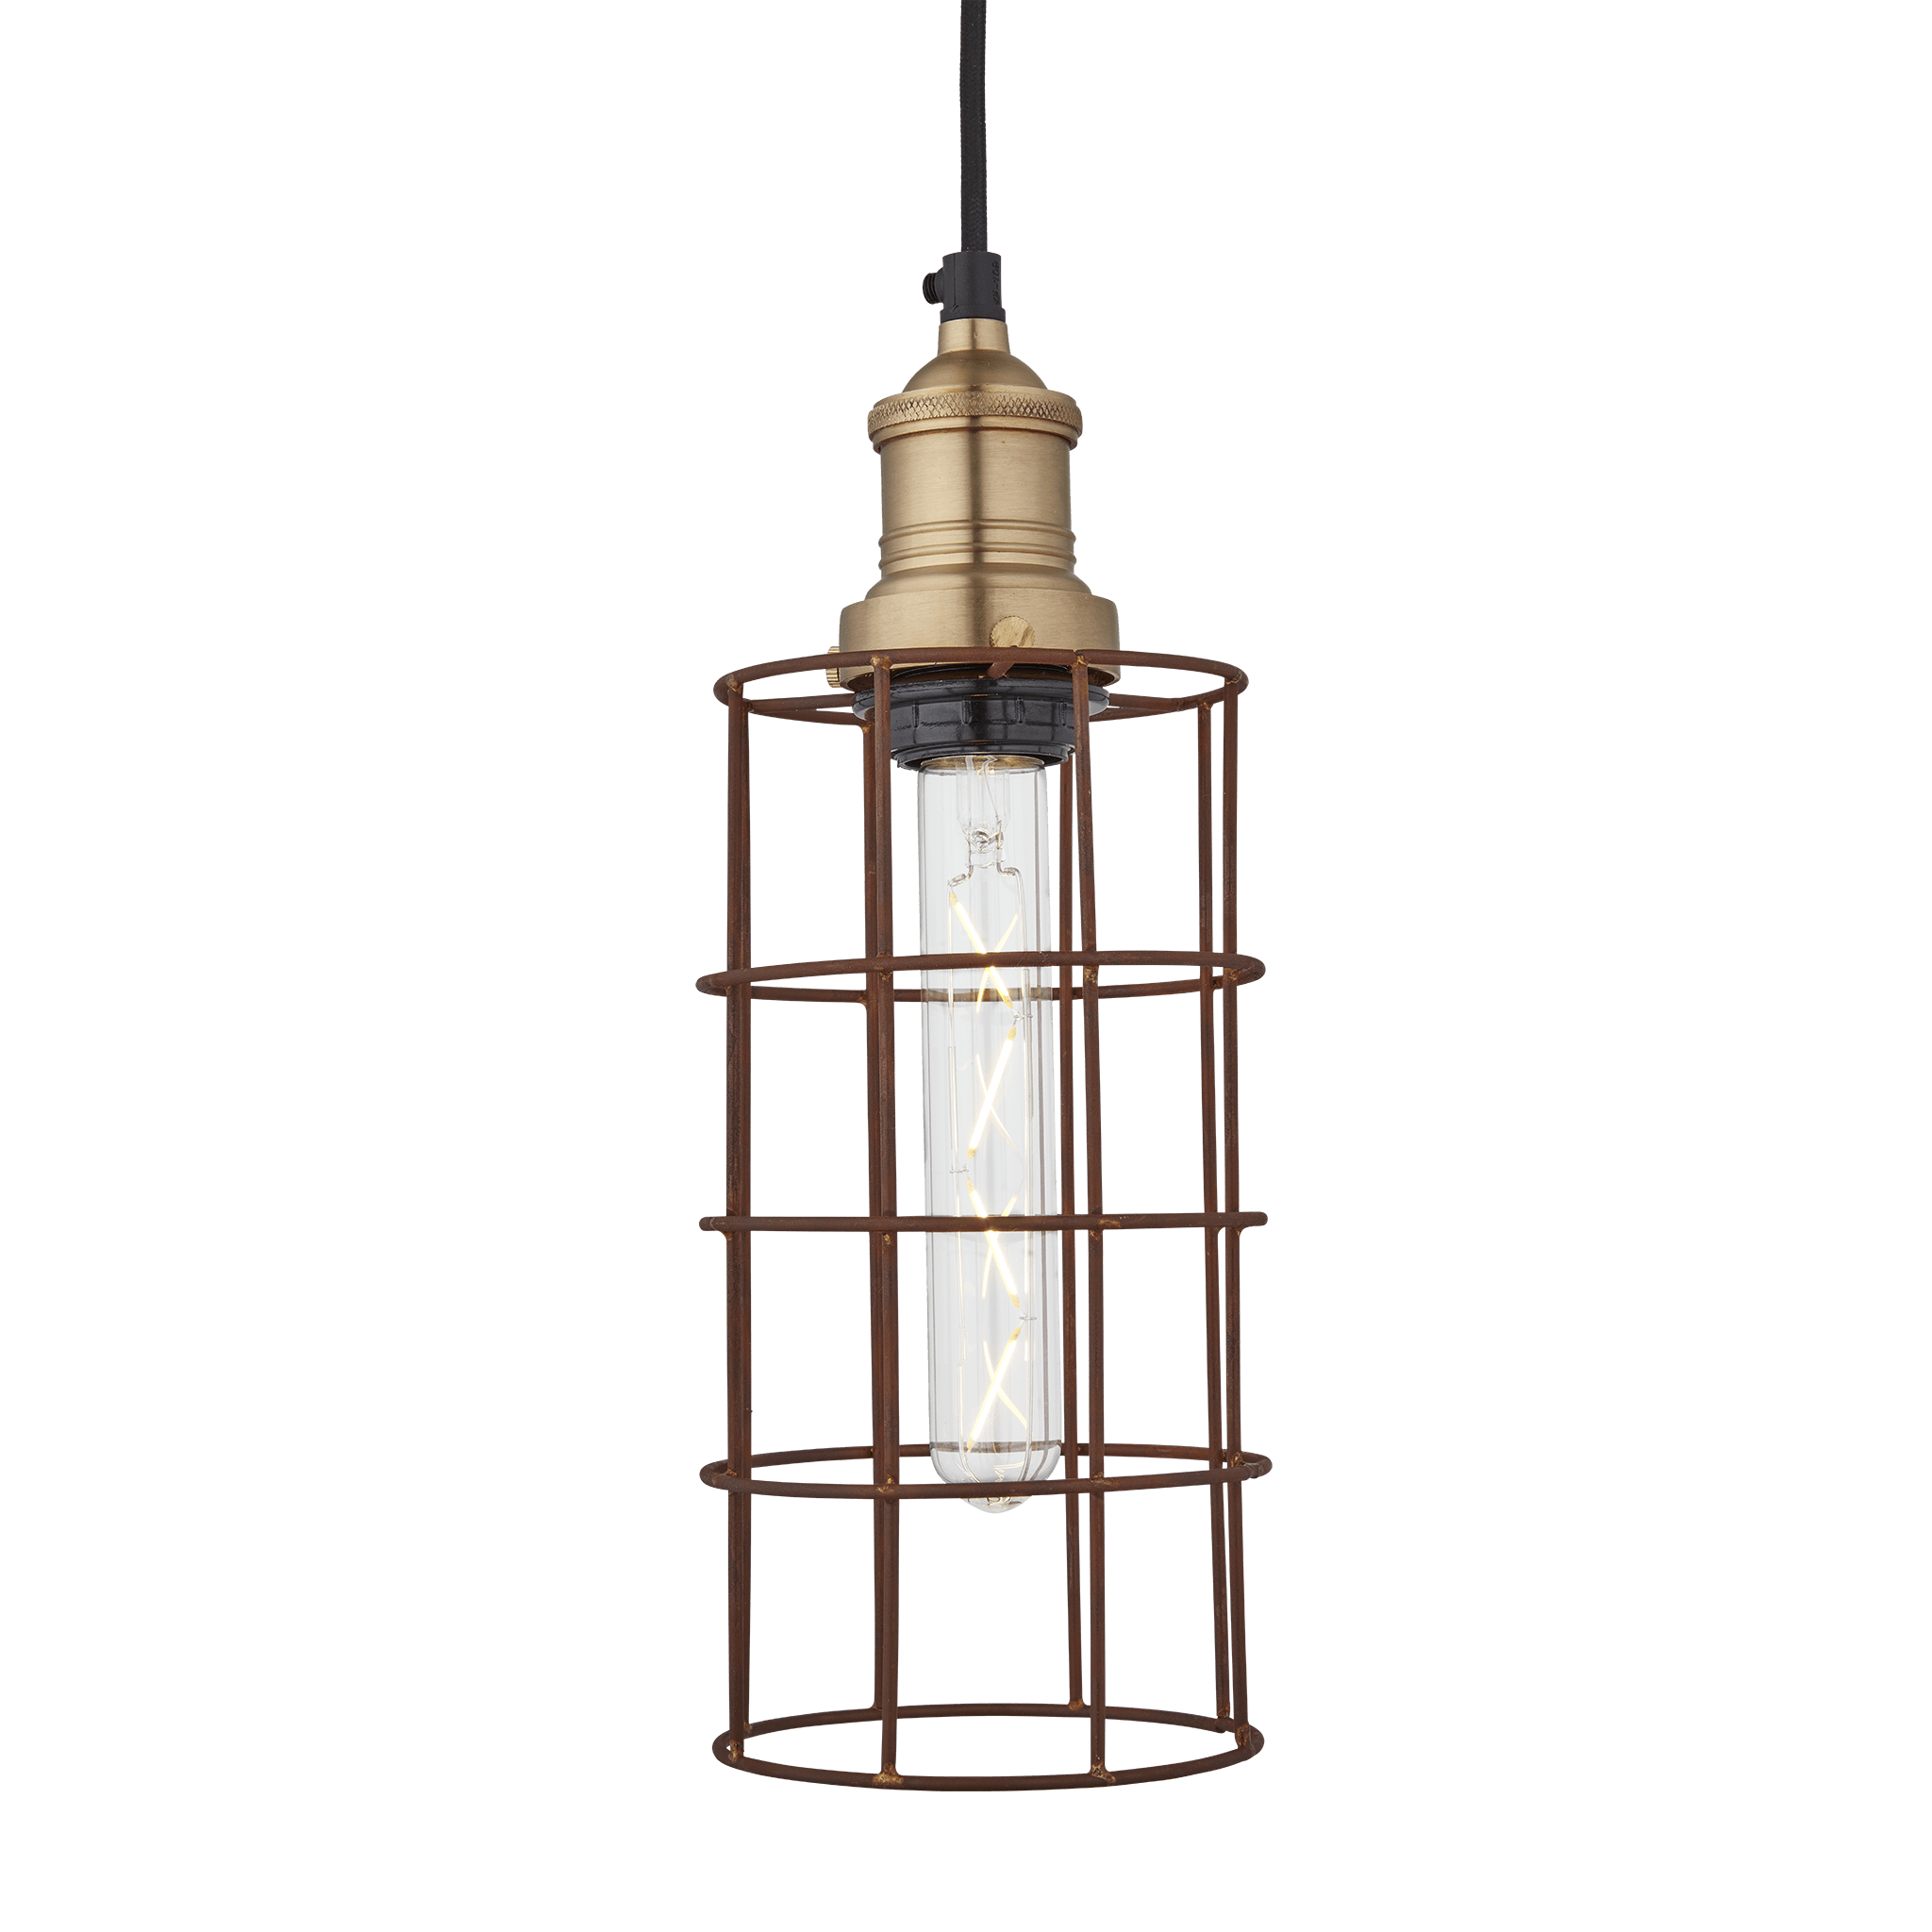 light tech lights inside comfy glass pendant lamp cylinder to applied decoration your important beautiful apartment lighting